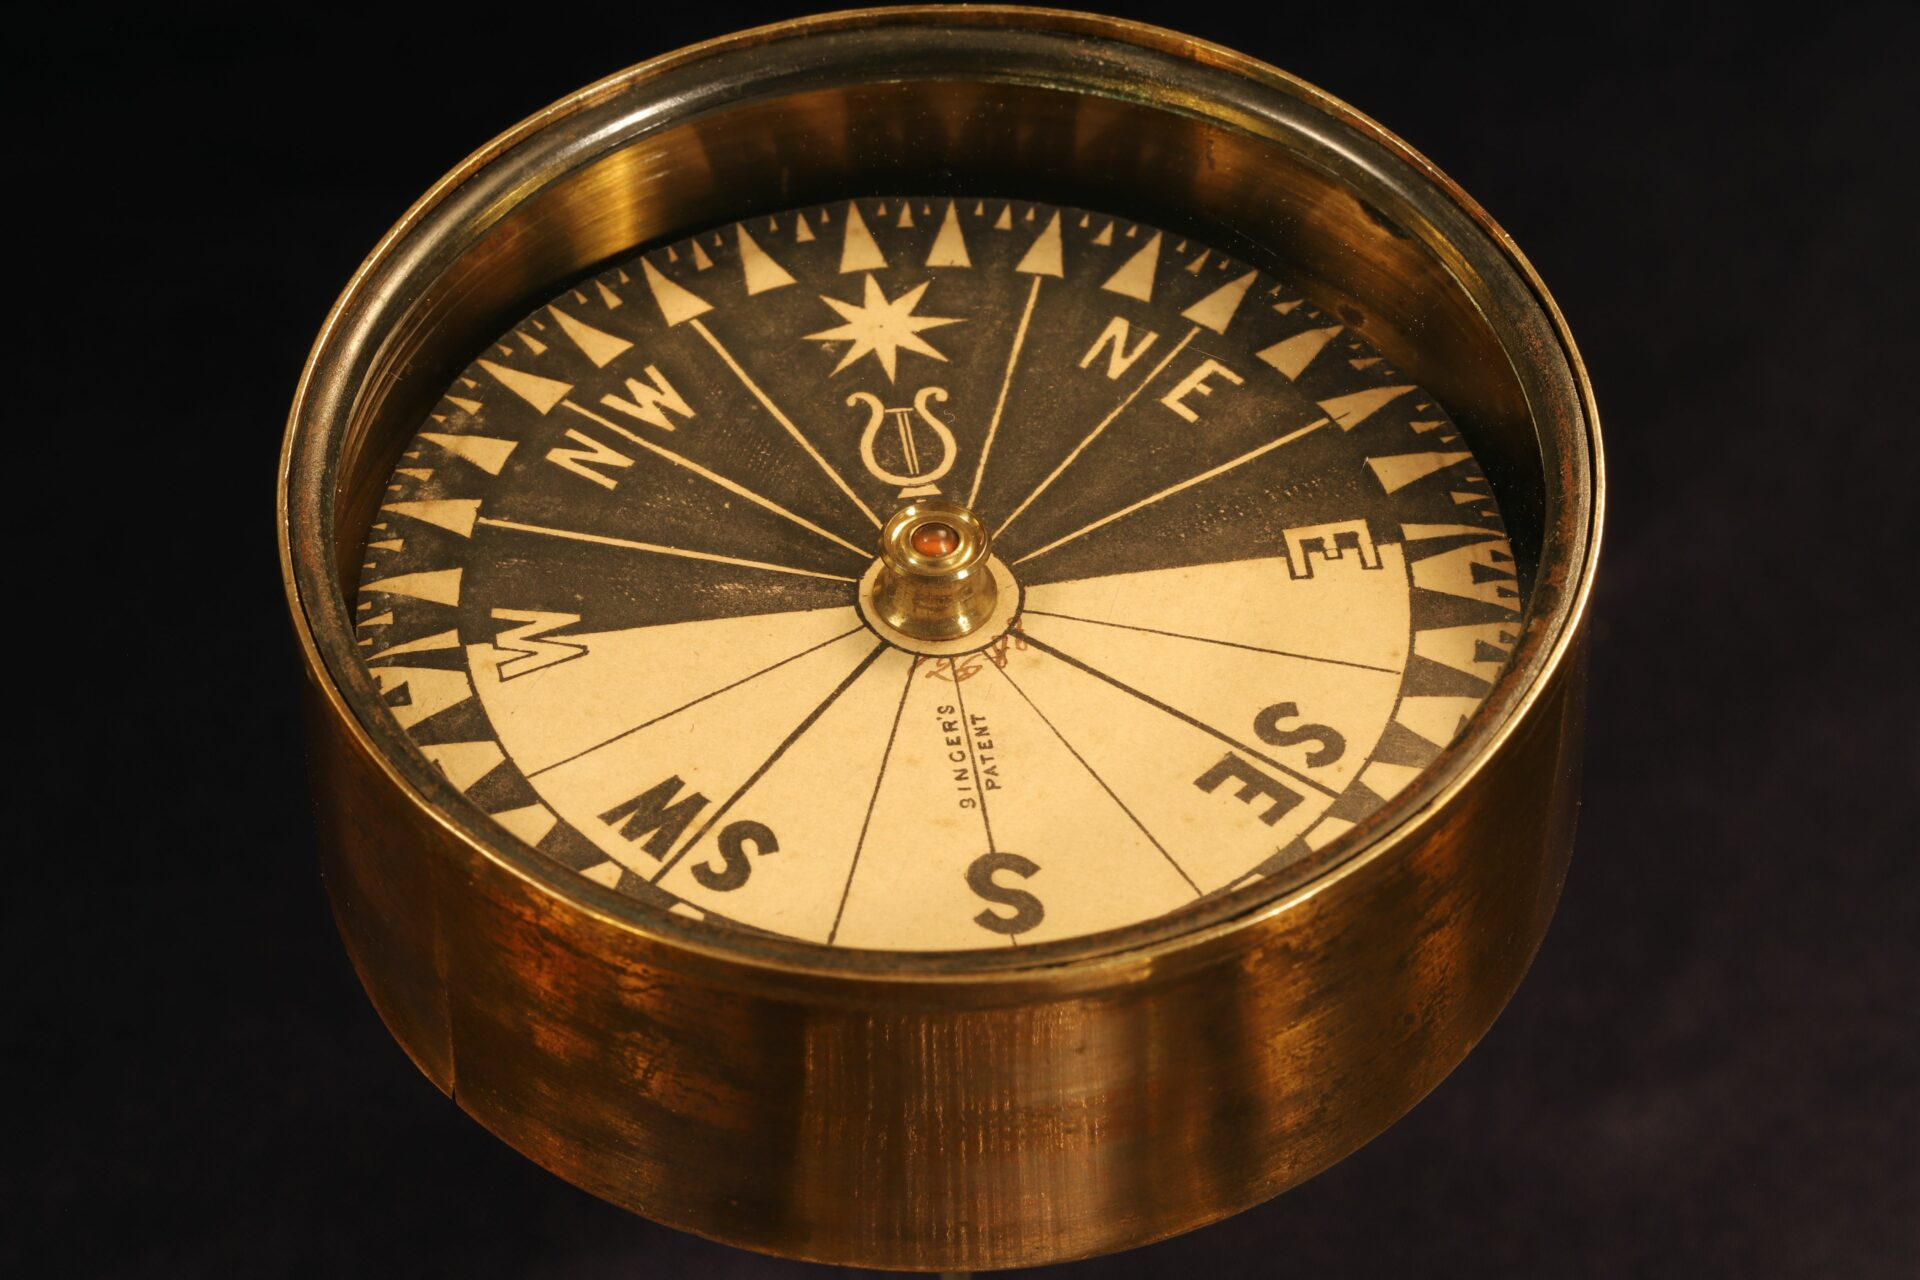 Image of Singers Patent Night Compass No 12588 c1865 showing dial